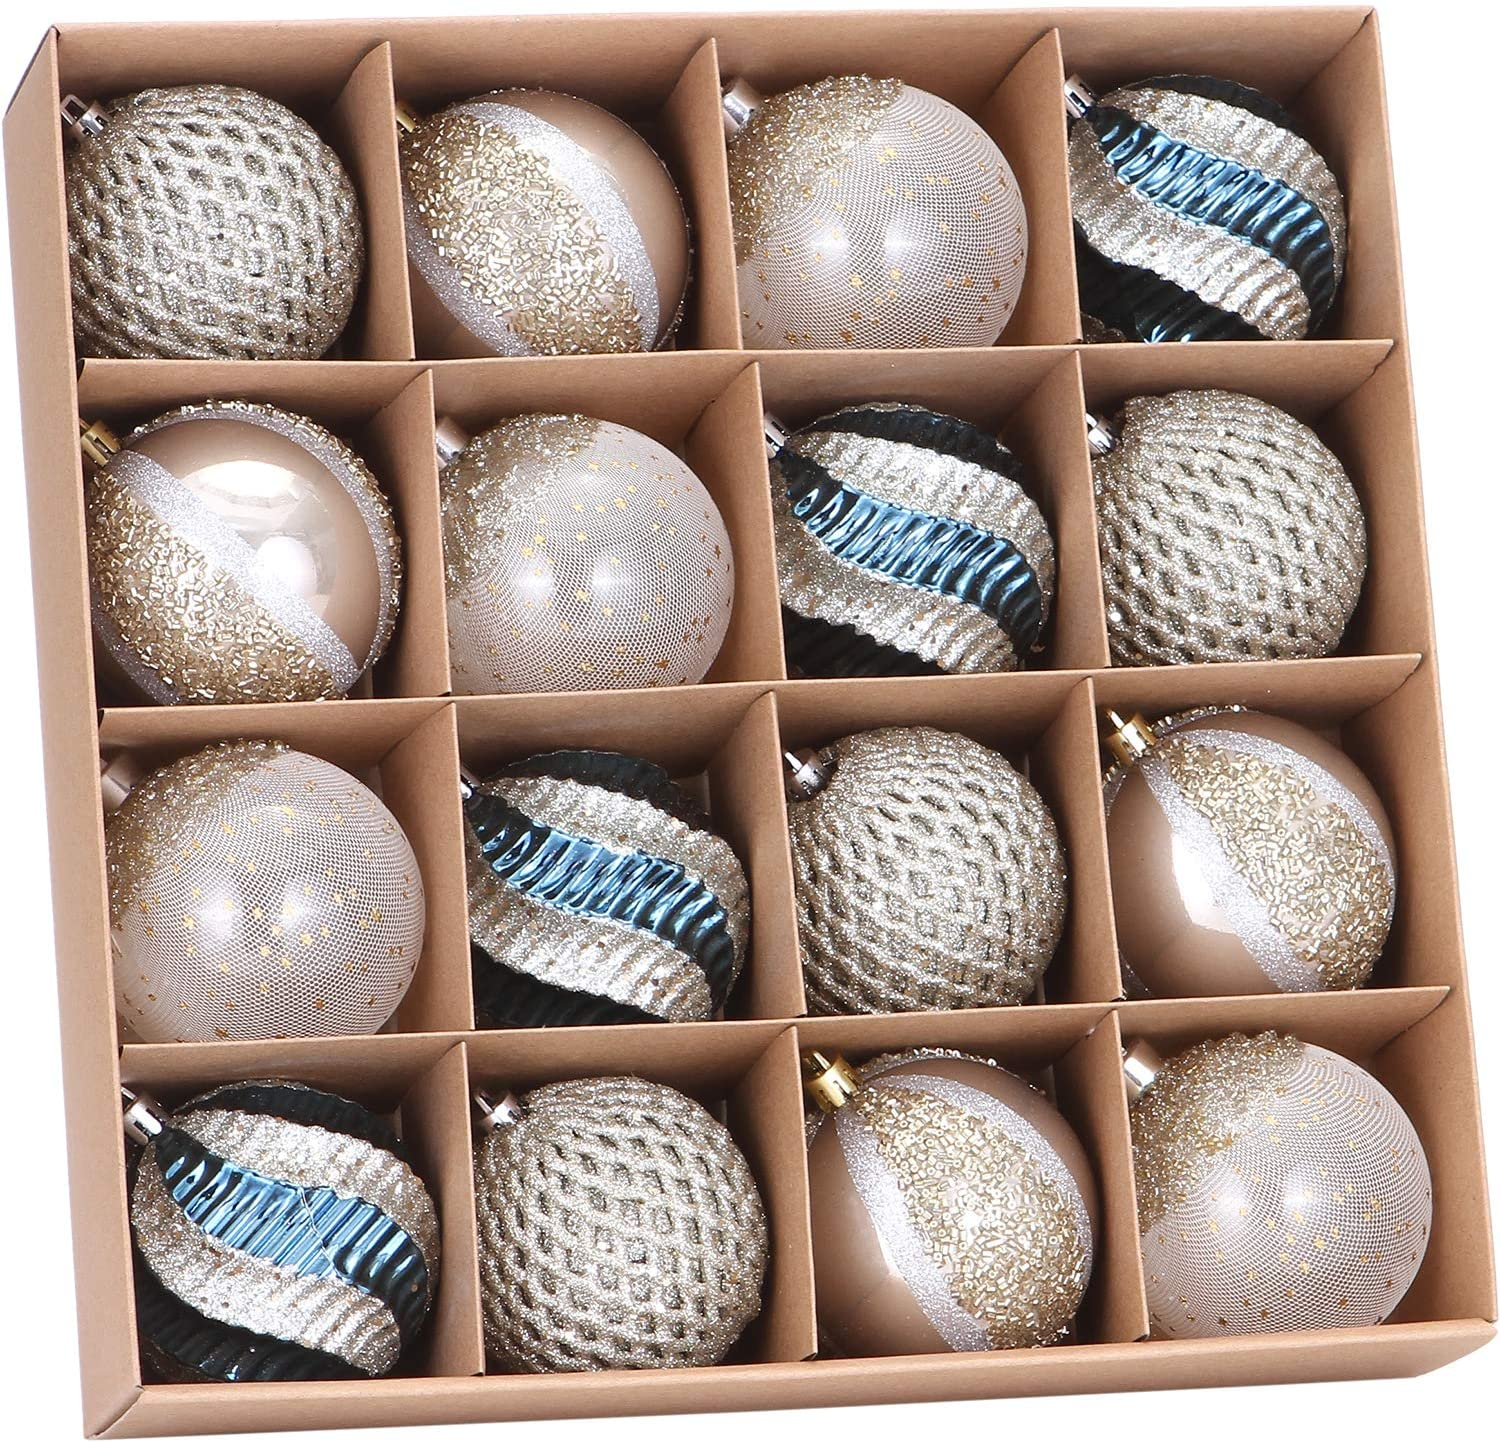 """Sea Team 80mm/3.15"""" Delicate Contrast Color Theme Painting & Glittering Christmas Tree Pendants Decorative Hanging Christmas Baubles Balls Ornaments Set - 16 Pieces (Stone Blue & Silver Grey)"""